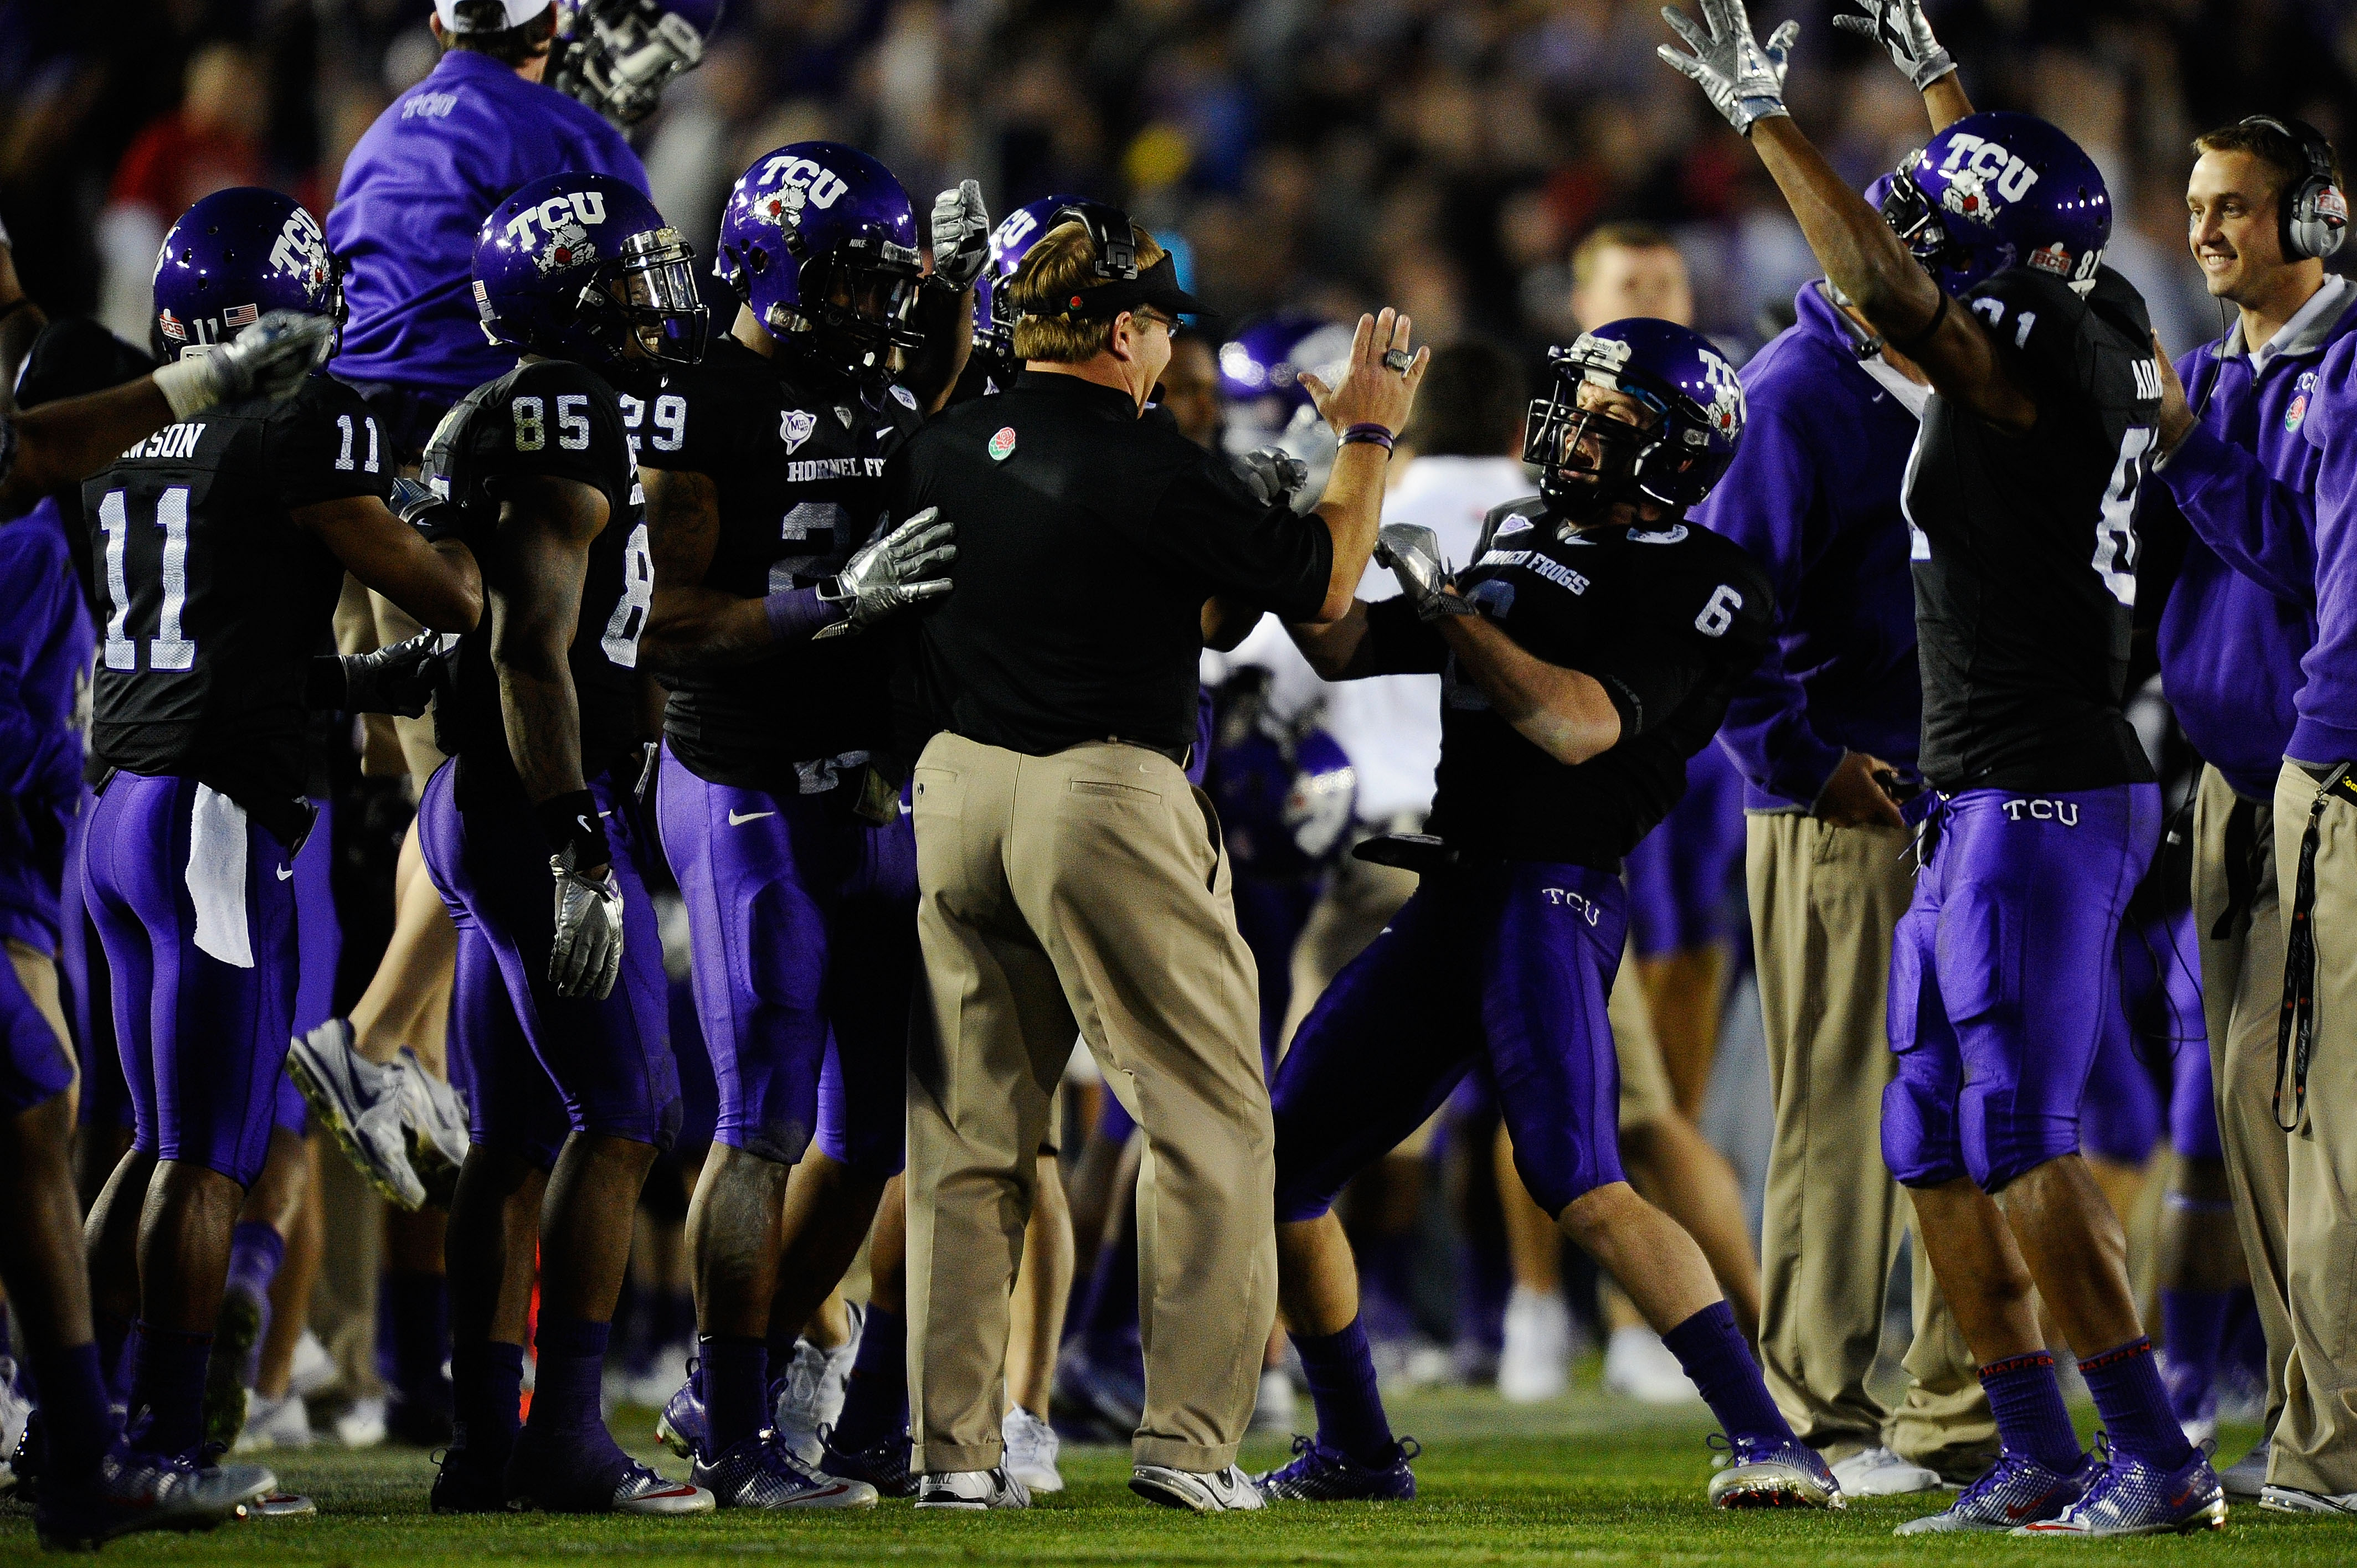 PASADENA, CA - JANUARY 01:  The TCU Horned Frogs celebrate after recovering an onside kick by the Wisconsin Badgers in the fourth quarter of the 97th Rose Bowl game on January 1, 2011 in Pasadena, California.  (Photo by Kevork Djansezian/Getty Images)